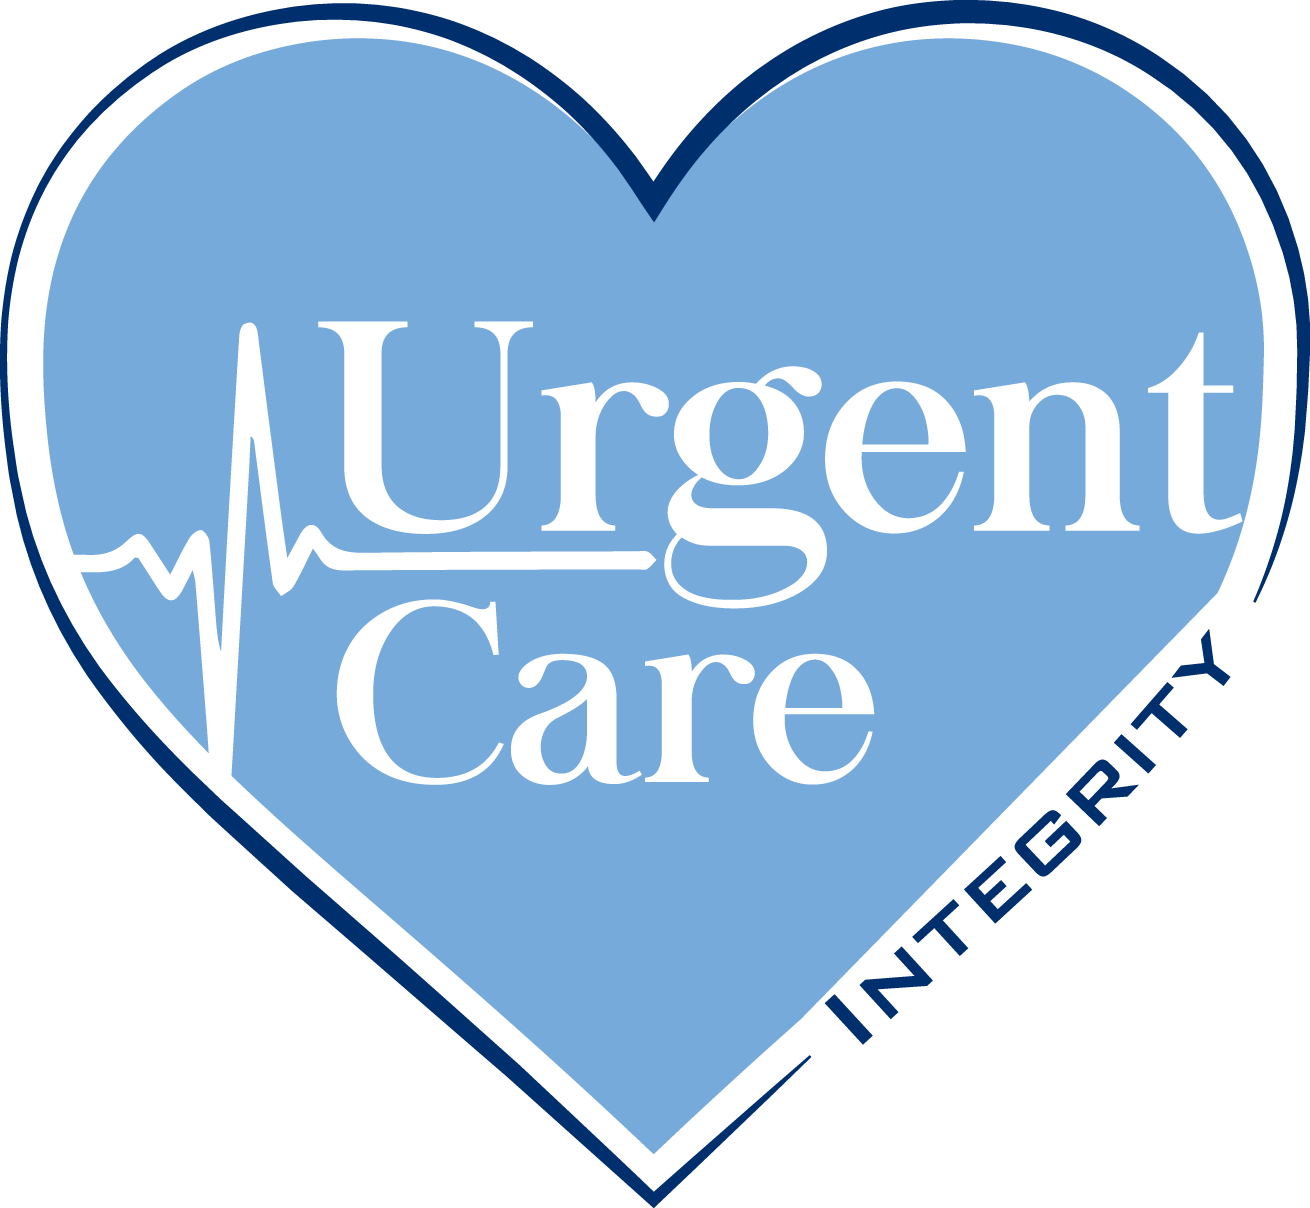 Integrity Urgent Care - Killeen Logo